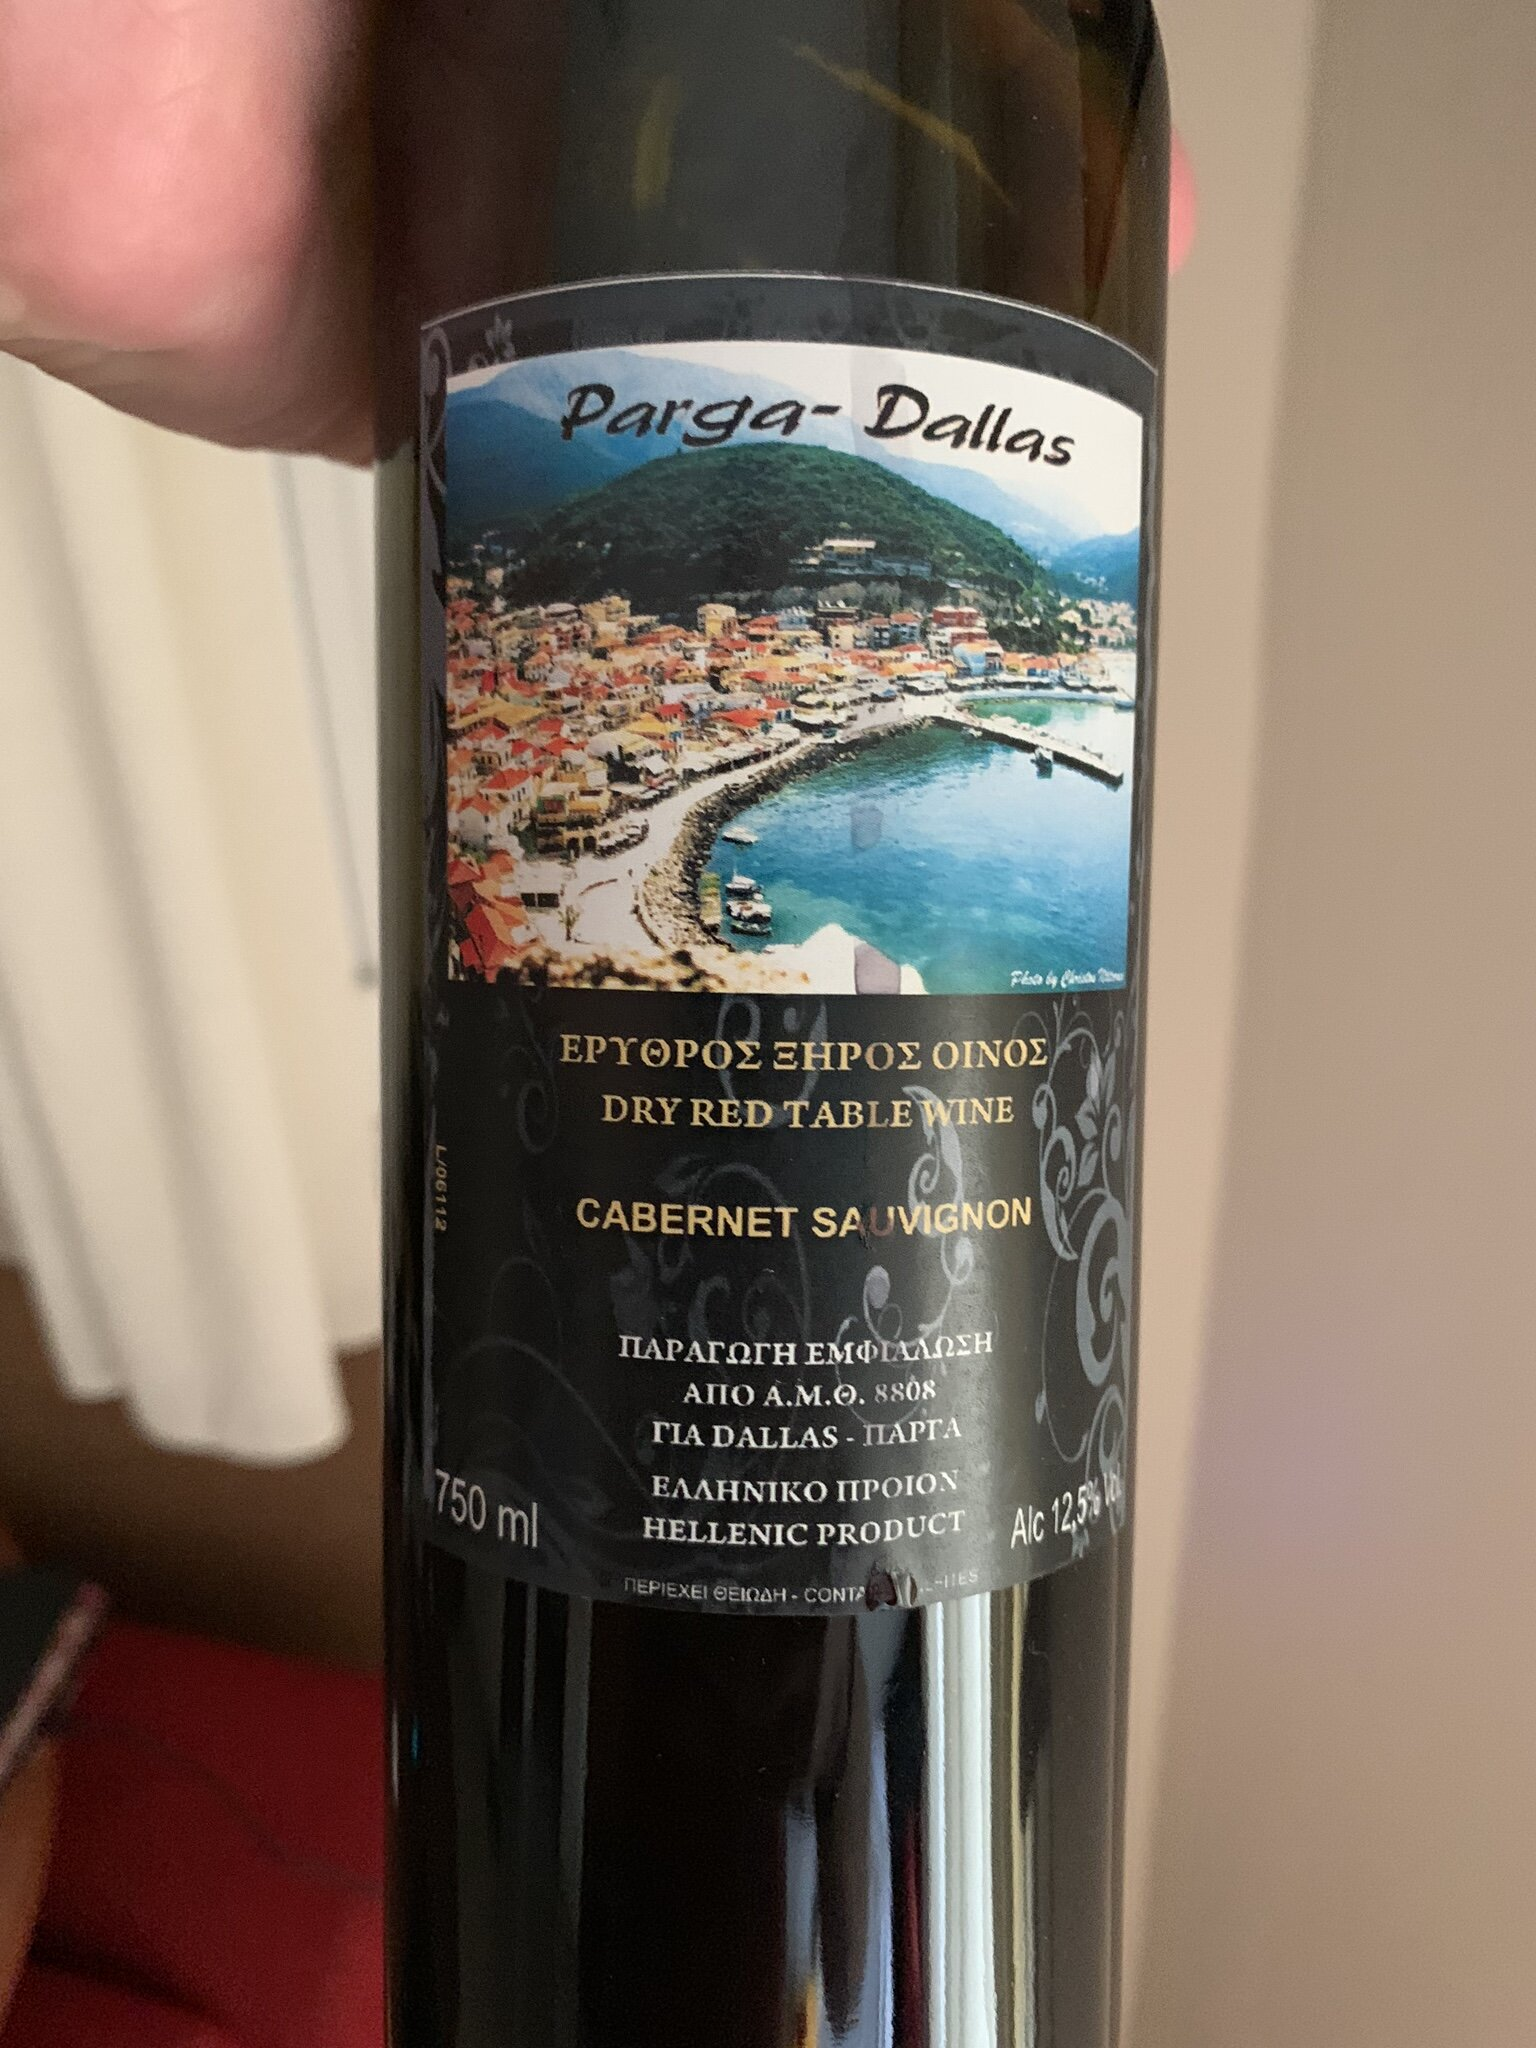 Wine from the supermarket Dallas in Parga